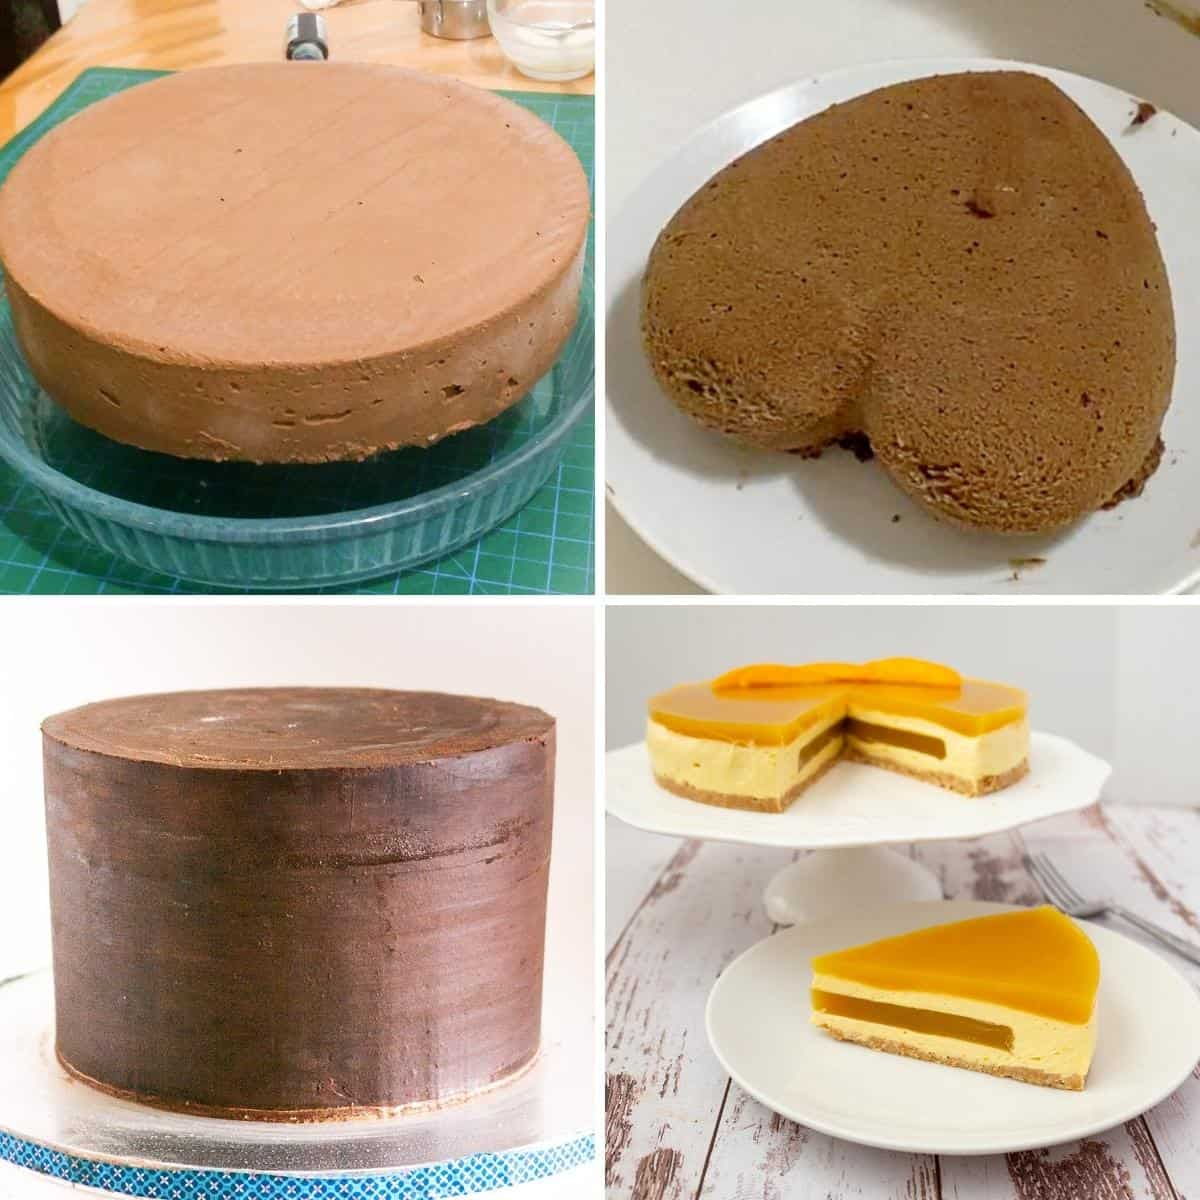 Collage showing types of cake for mirror glaze.